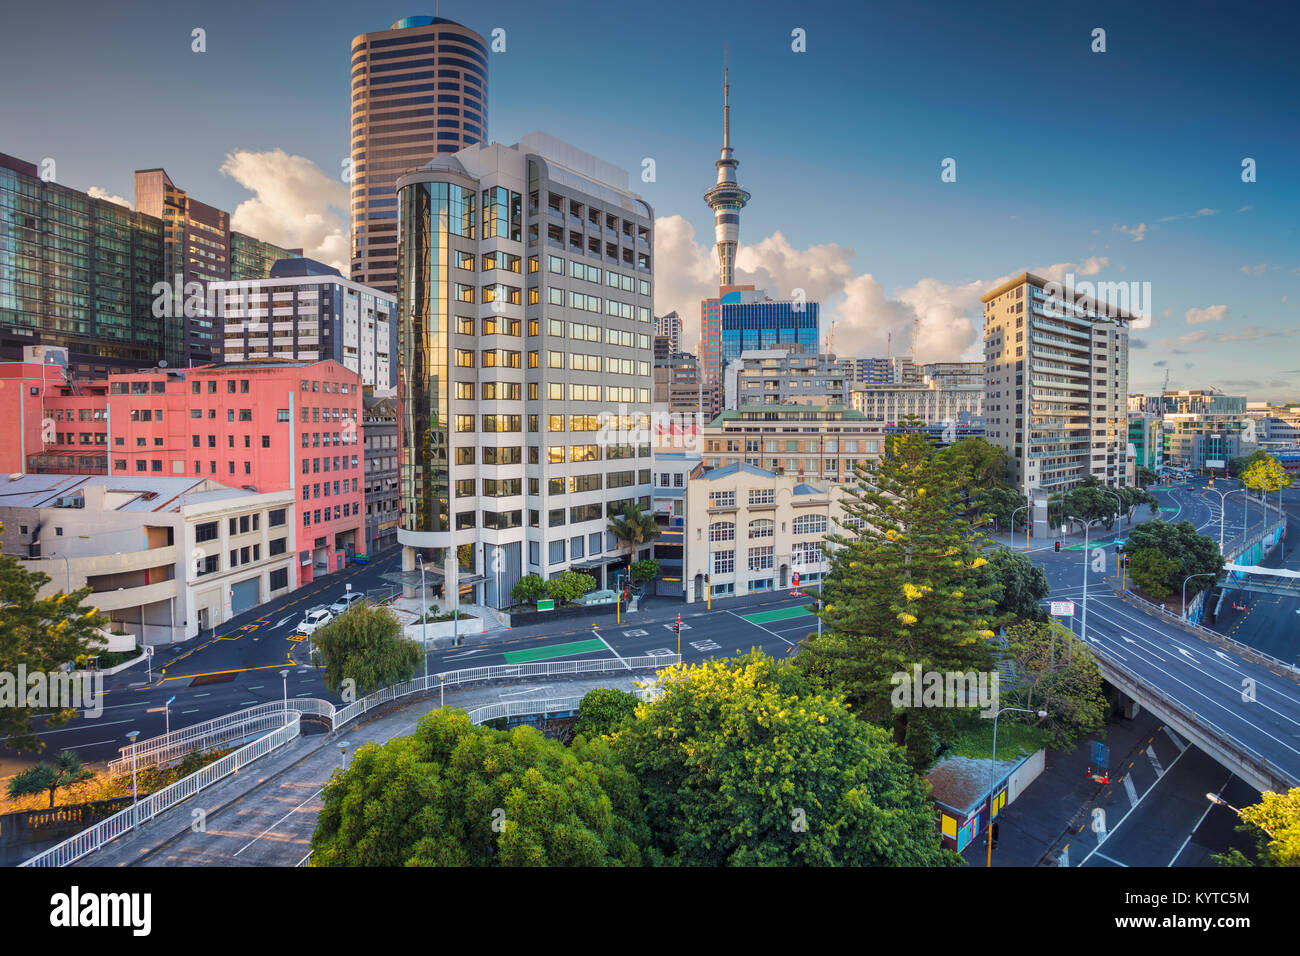 Auckland. Aerial cityscape image of Auckland skyline, New Zealand during summer day. - Stock Image